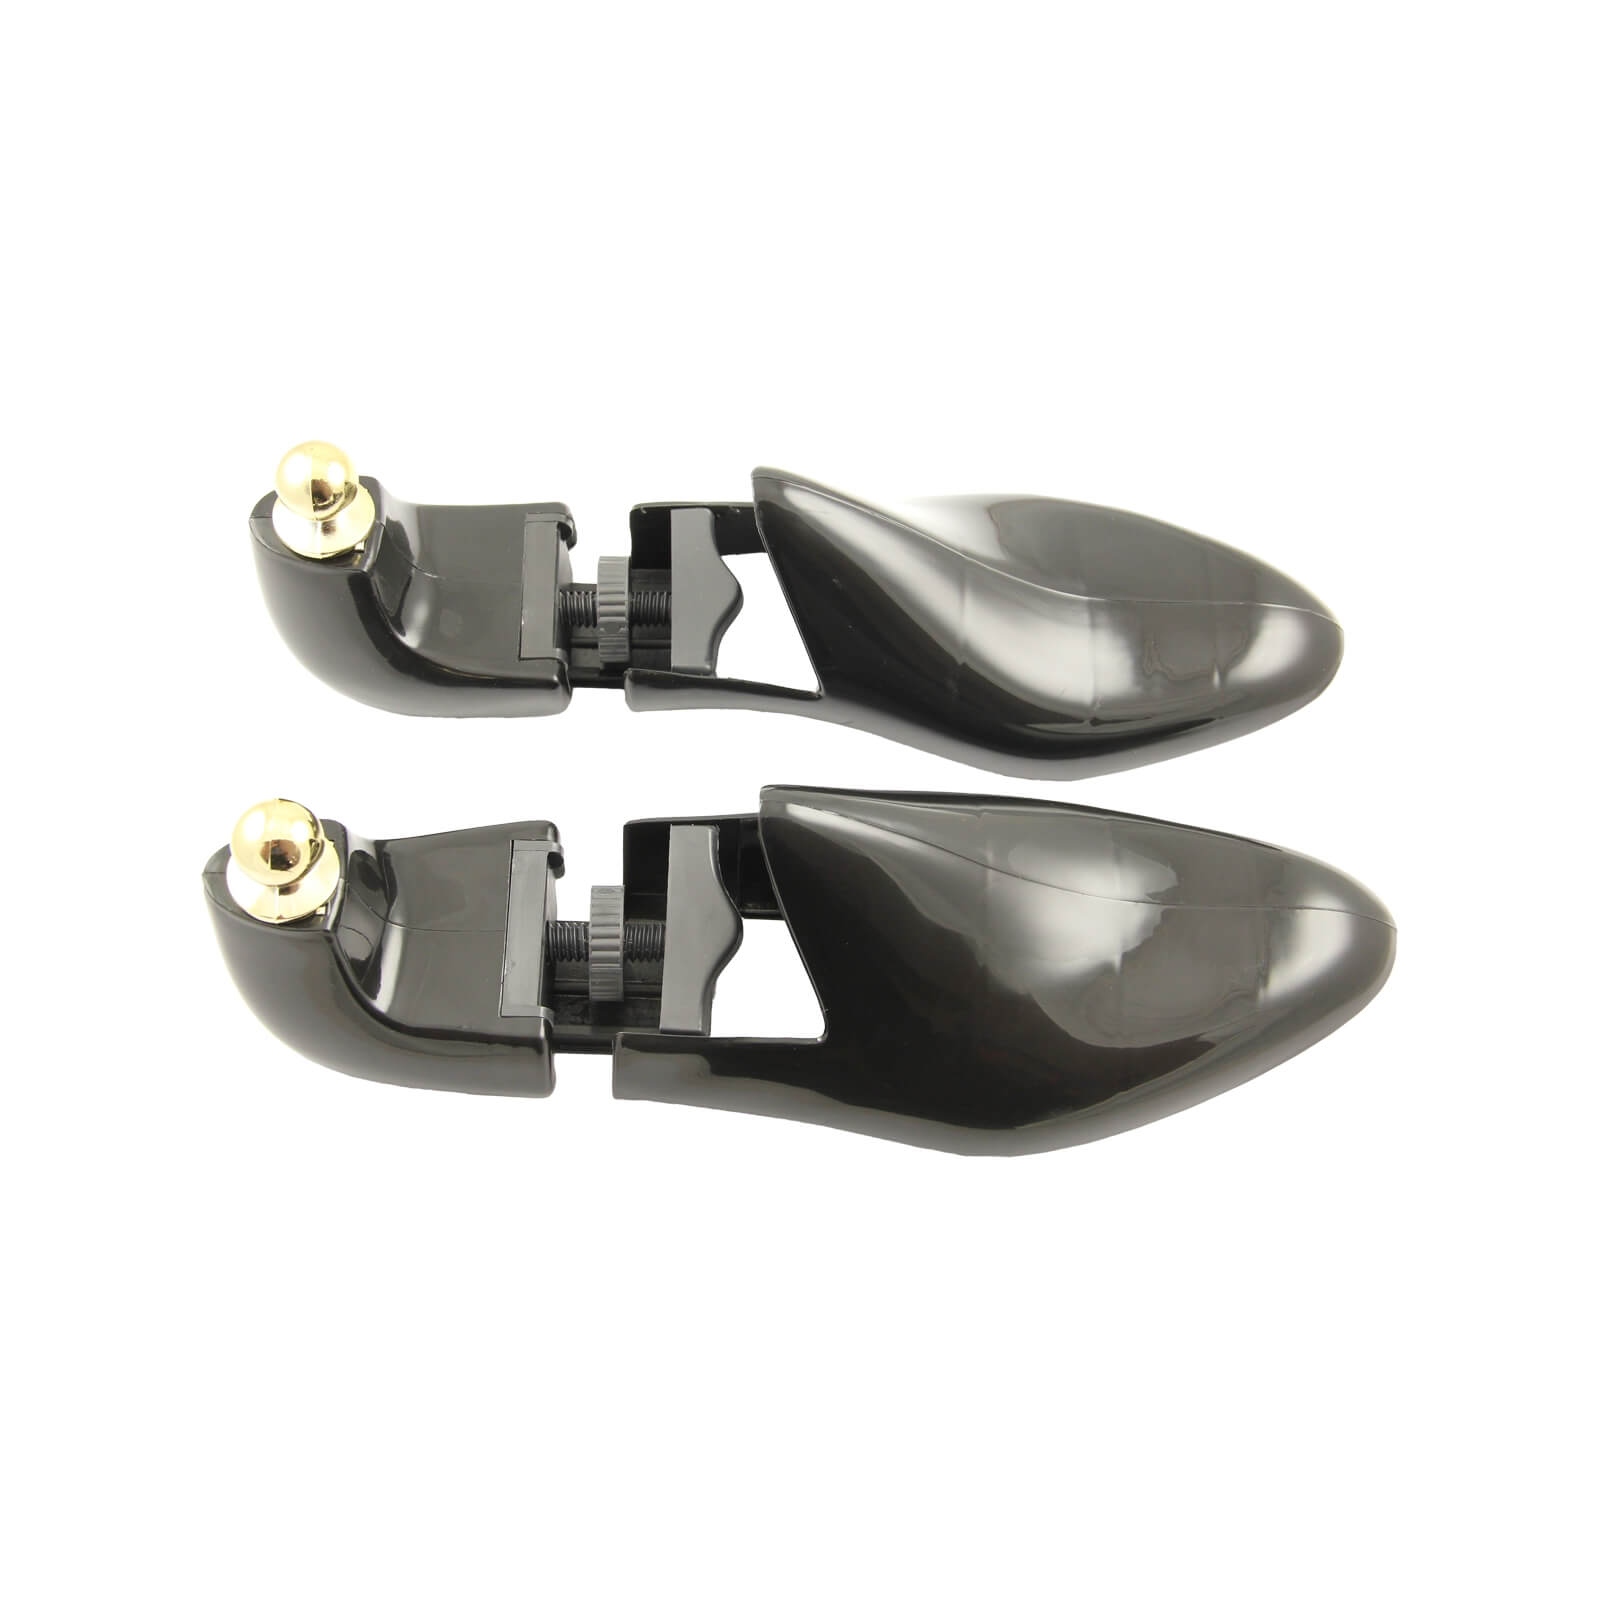 plastic shoe trees for